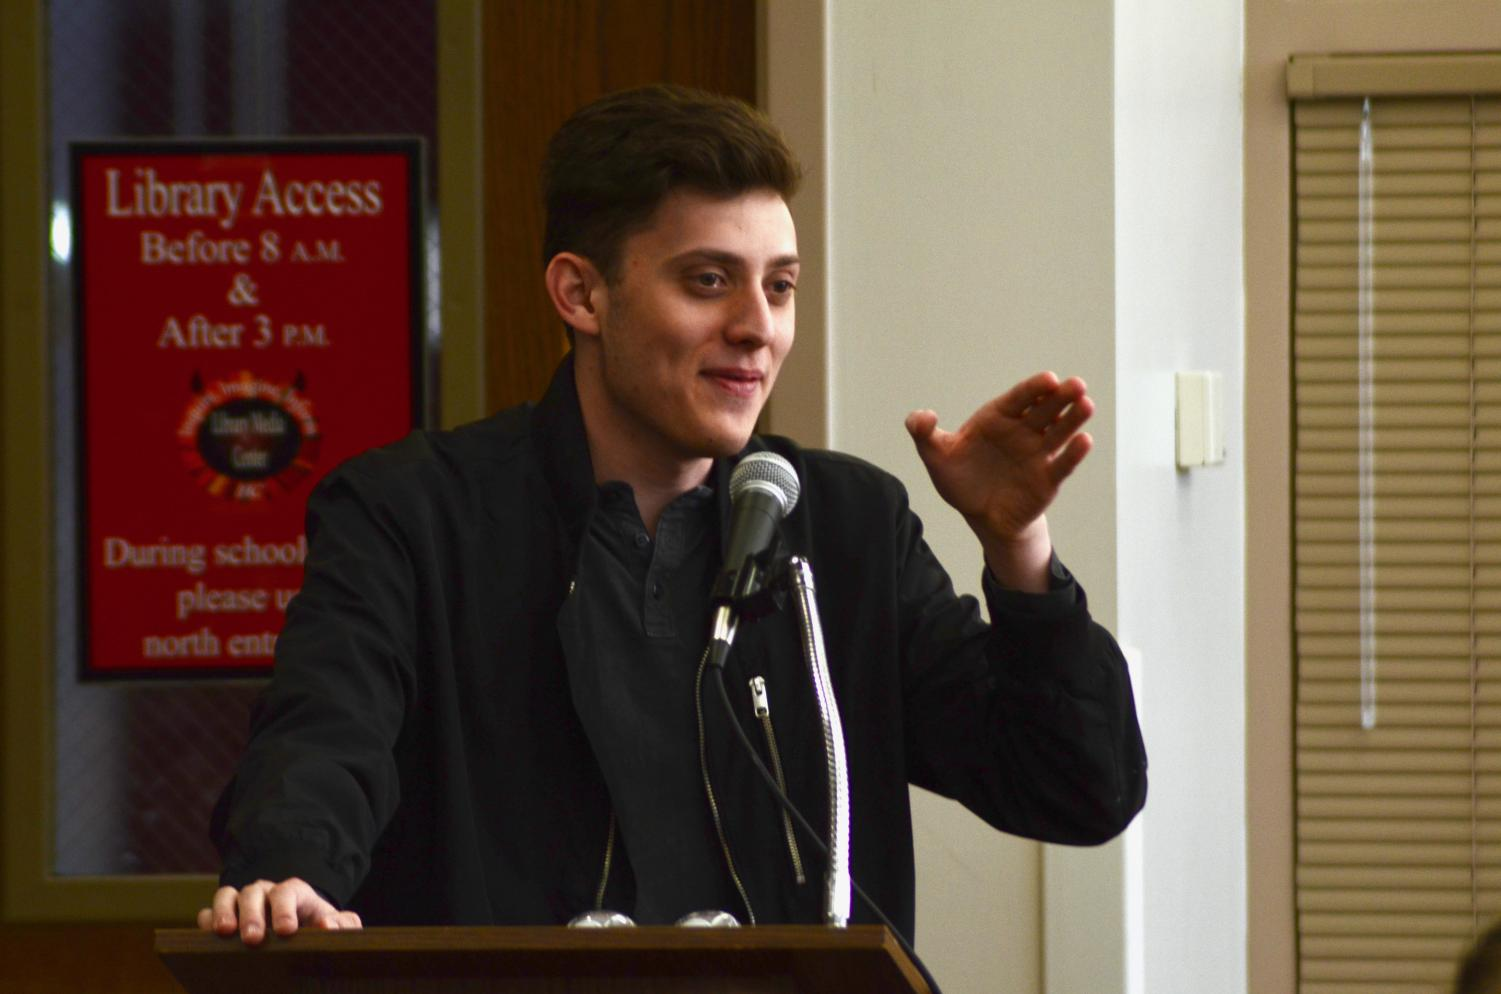 On Friday, March 8, the Conservative Club hosted Kyle Kashuv, a Parkland shooting survivor and gun rights activist, to speak to students in the library.